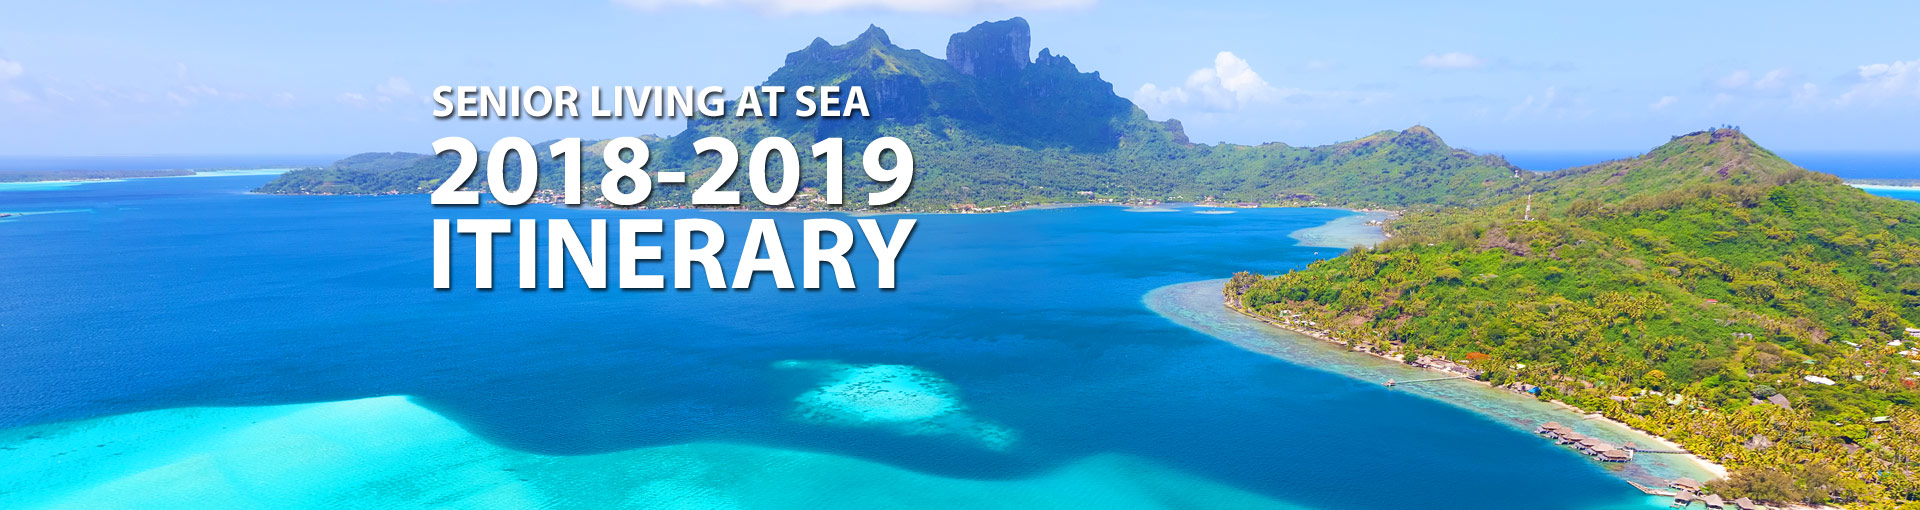 Senior Living at Sea Itinerary - South Pacific